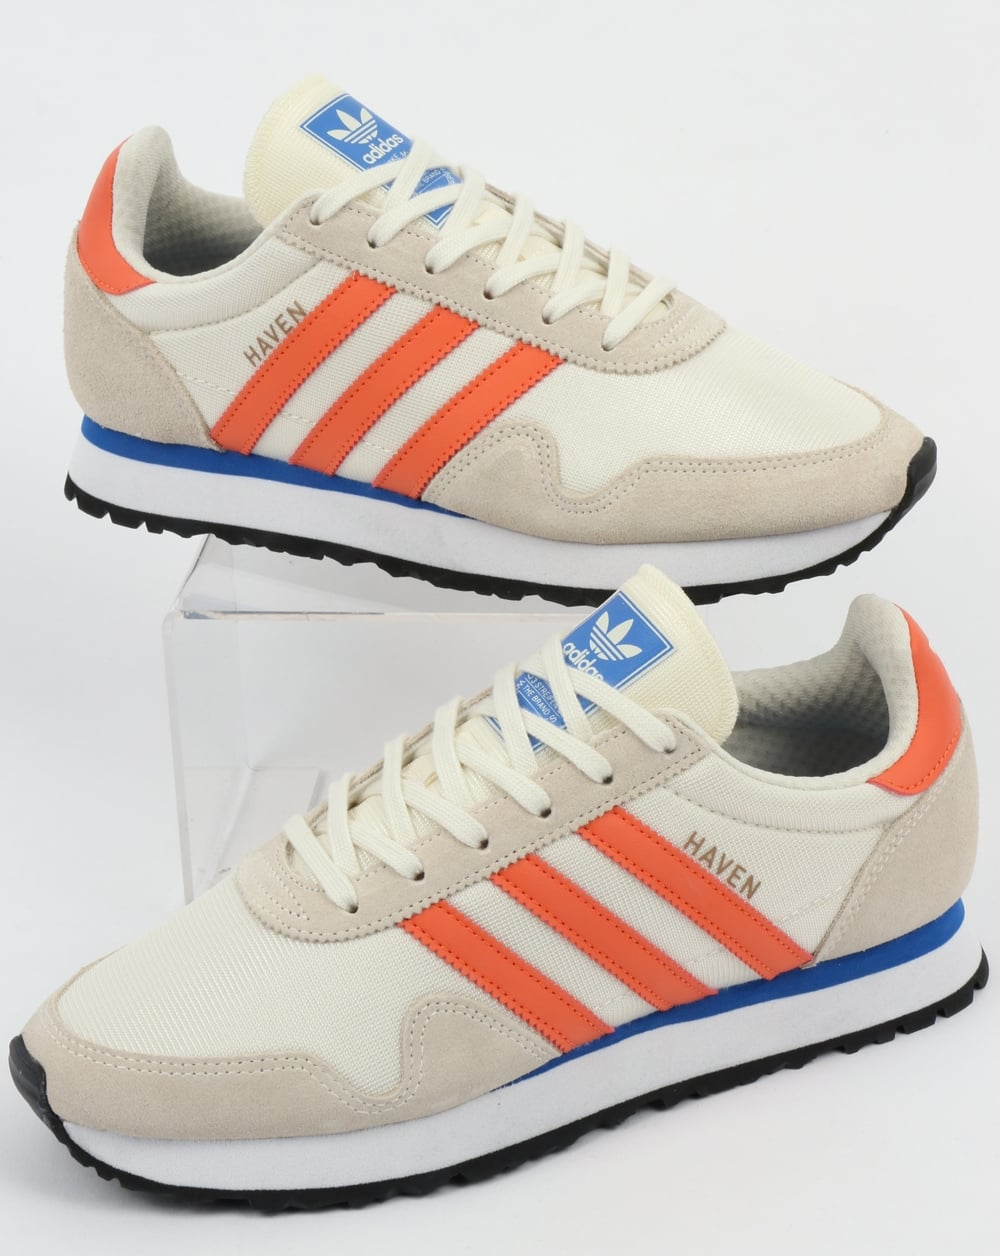 8d9a3ad1da68 adidas Trainers Adidas Haven Trainers Chalk White Trace Orange